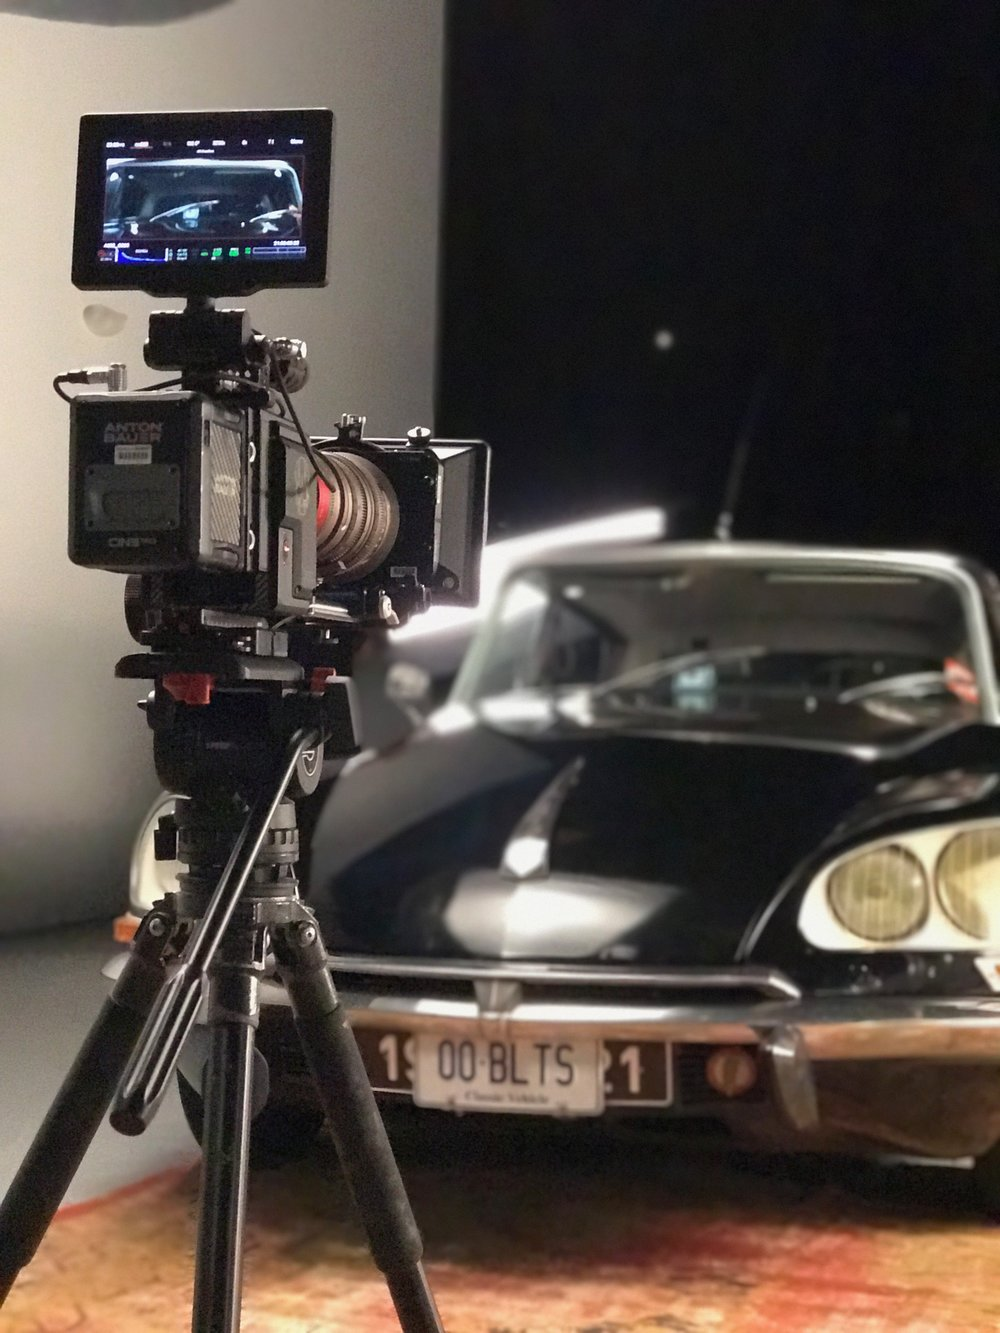 angenieux ez 1 studio car